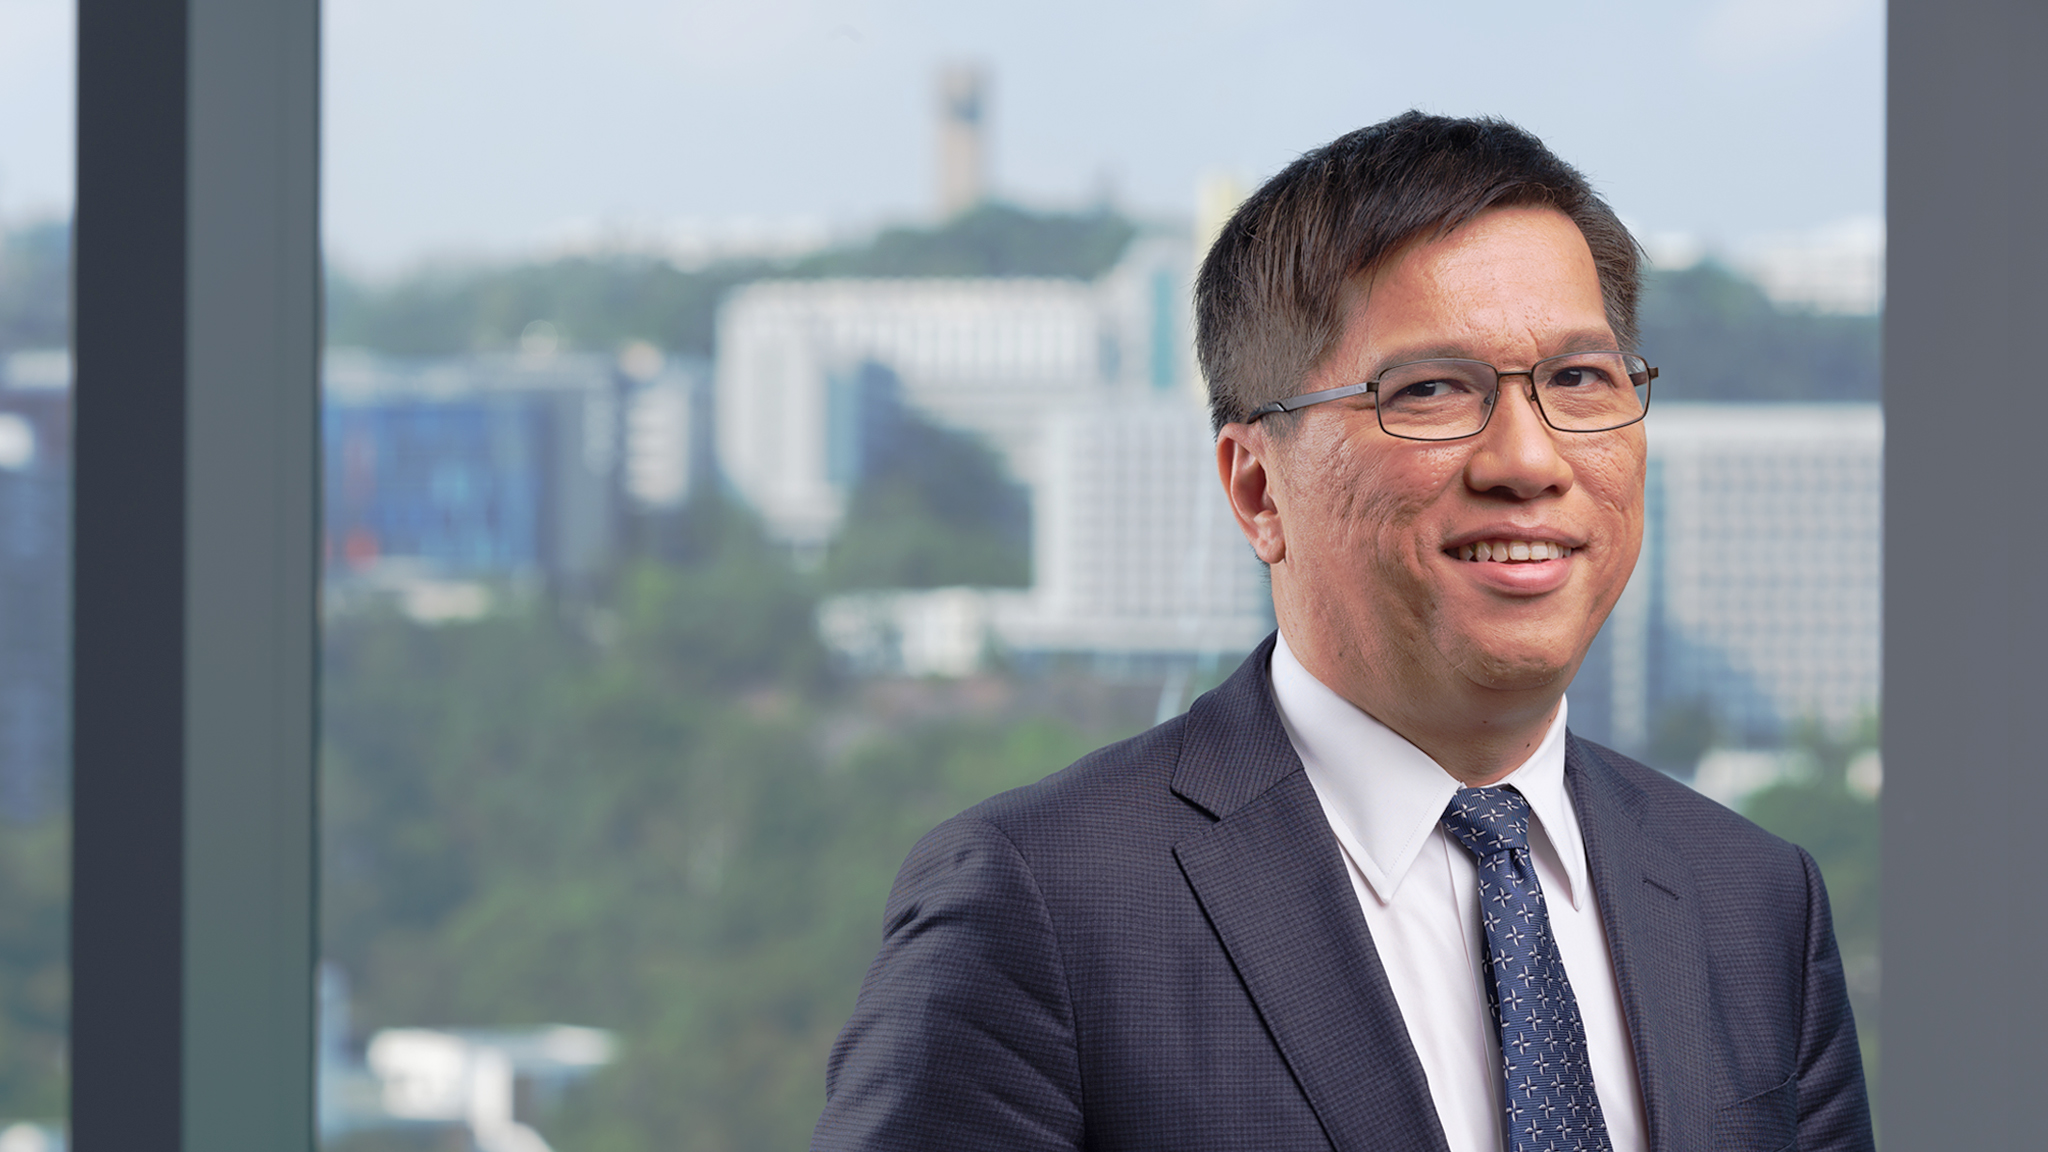 CUHK Business School Dean - Prof. Kalok Chan